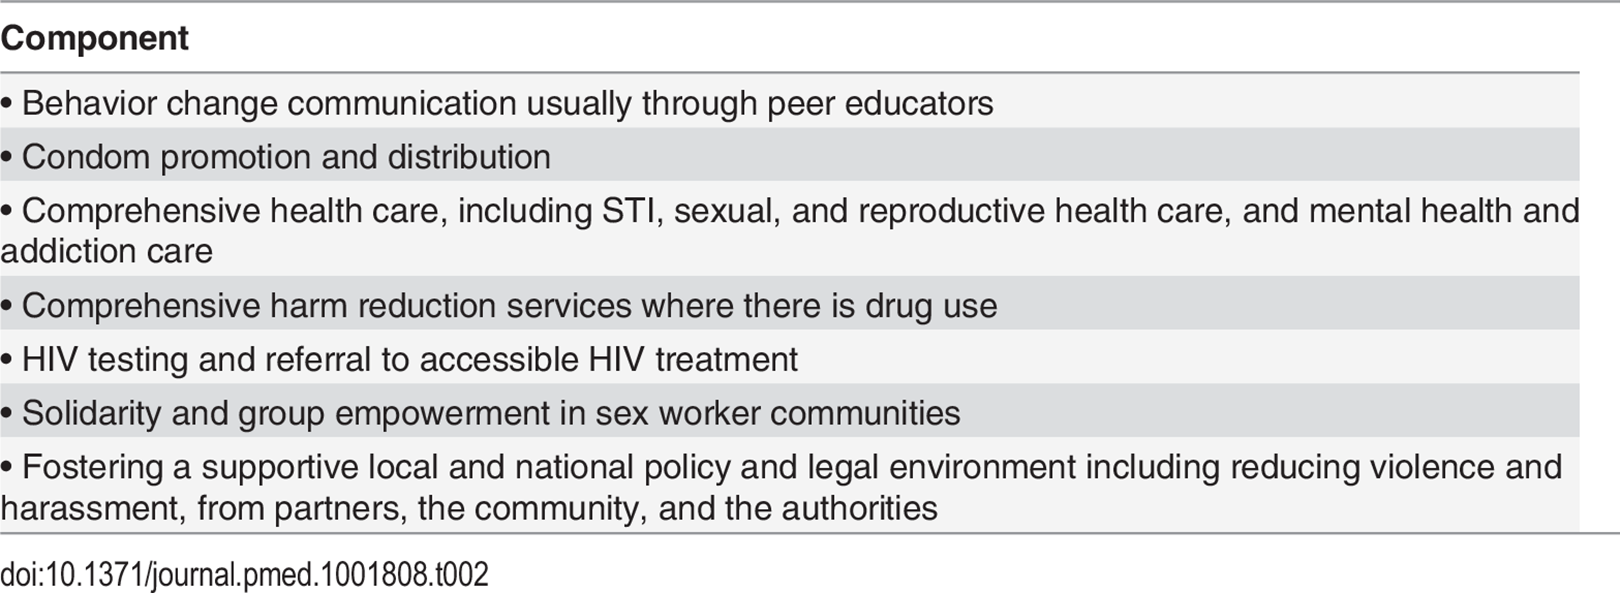 Components of a comprehensive sex worker HIV prevention program.